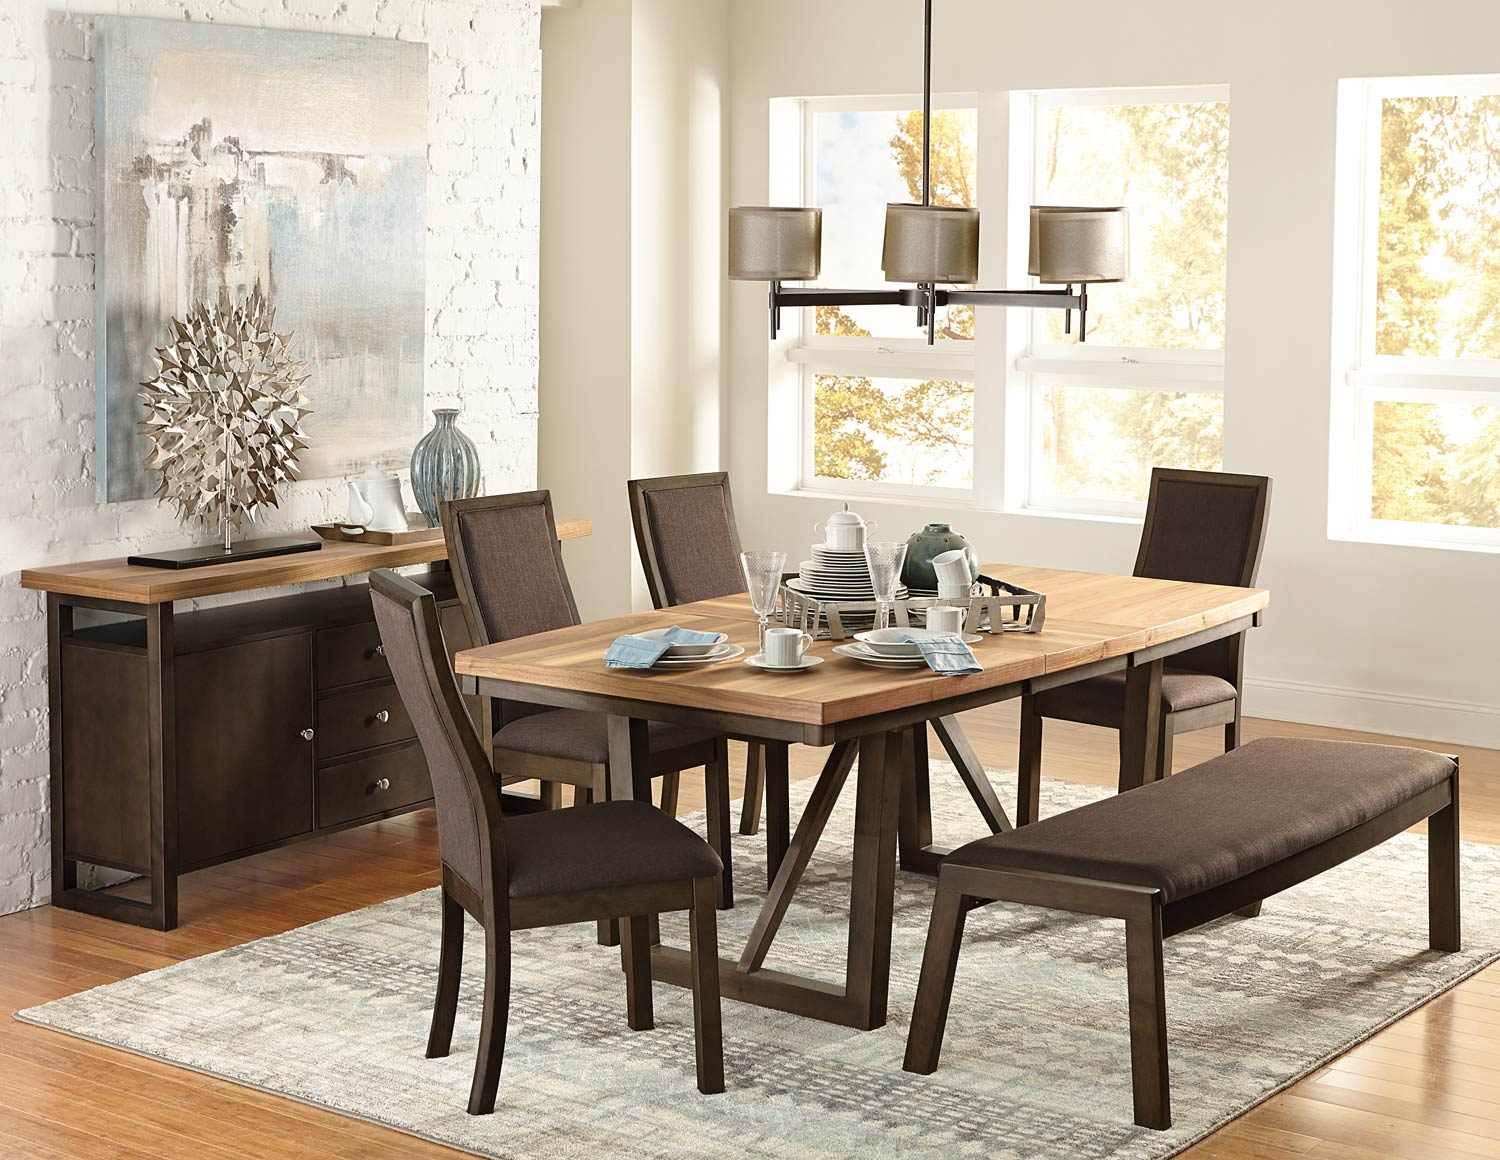 Homelegance Compson Dining Set - Natural/Walnut